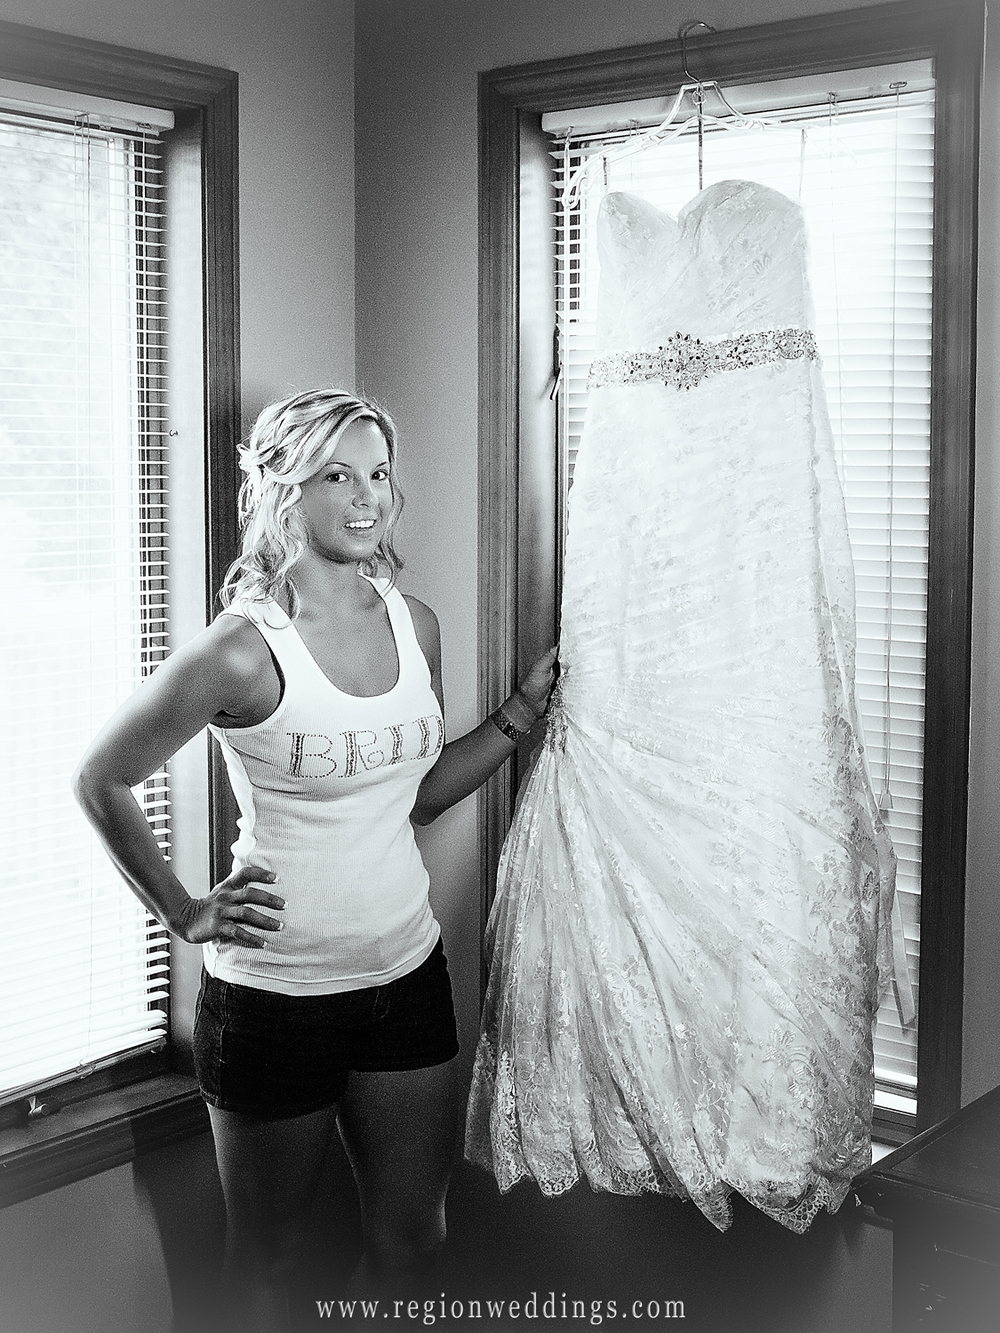 The bride shows off her dress on her wedding day in Schererville, Indiana.